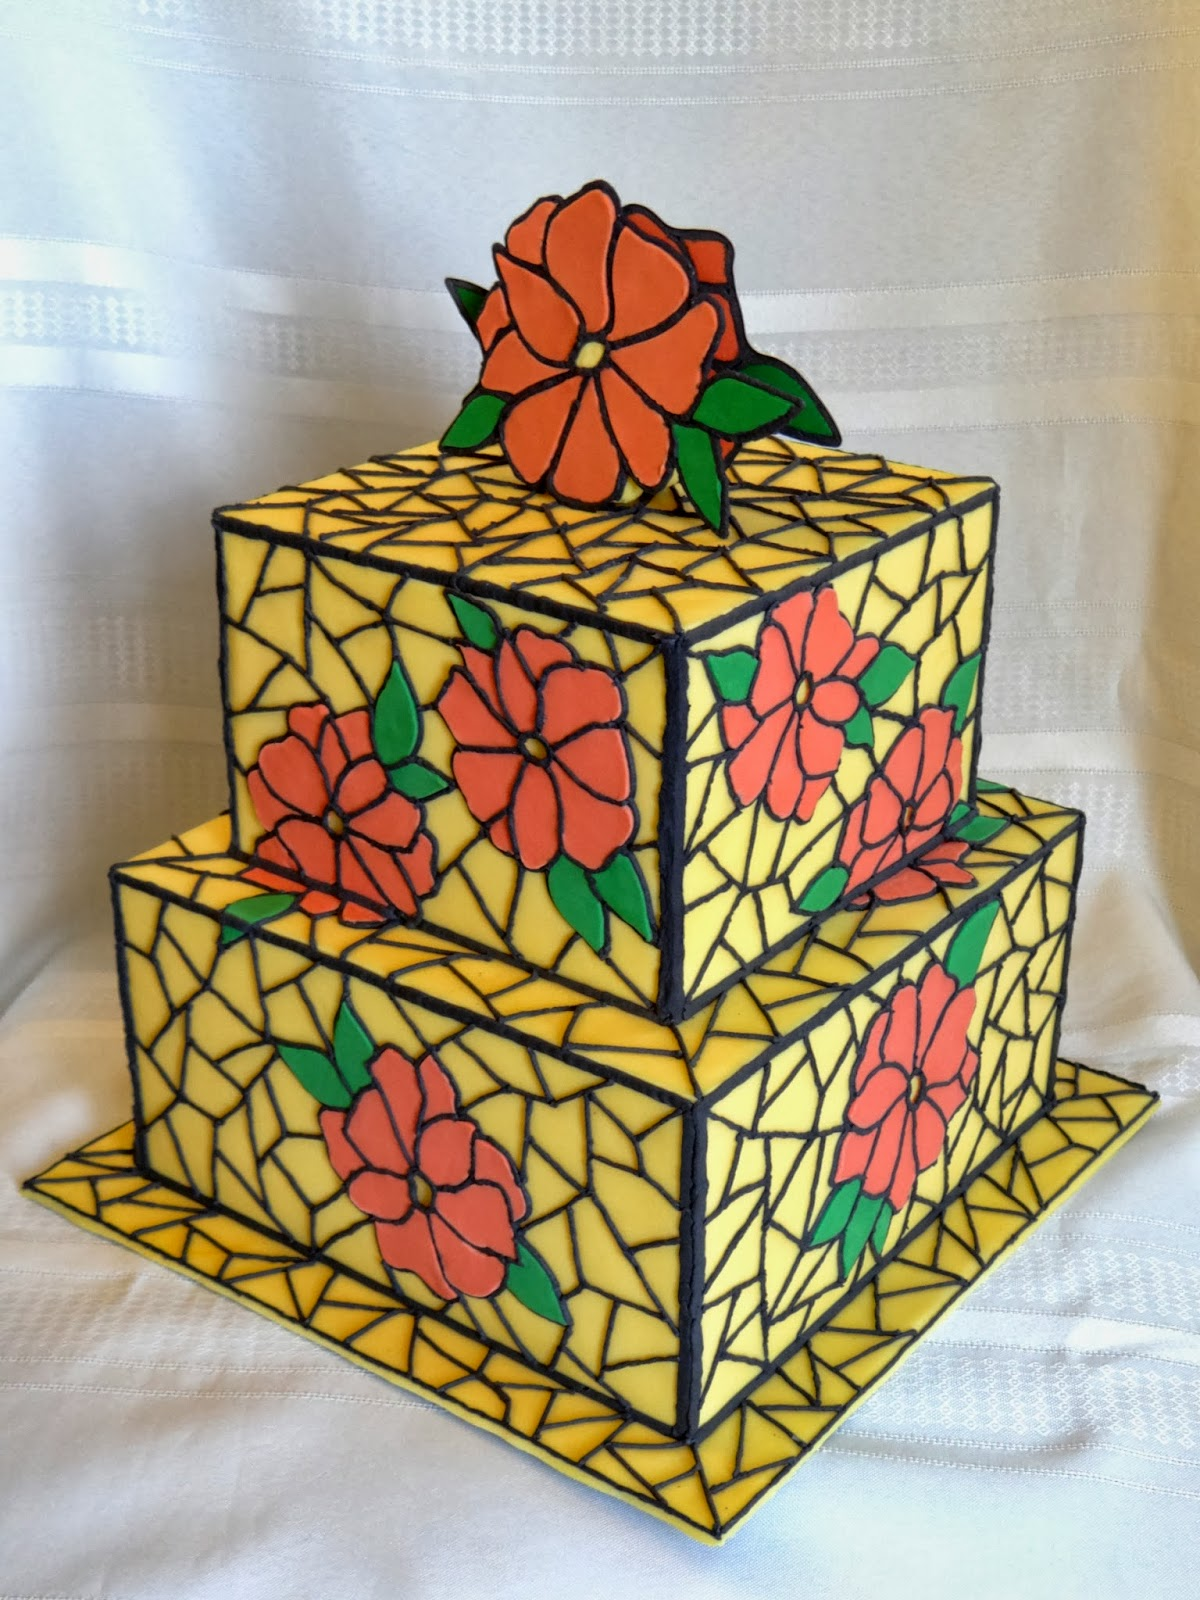 Tiers Of Joy Cakery Stained Glass Cake